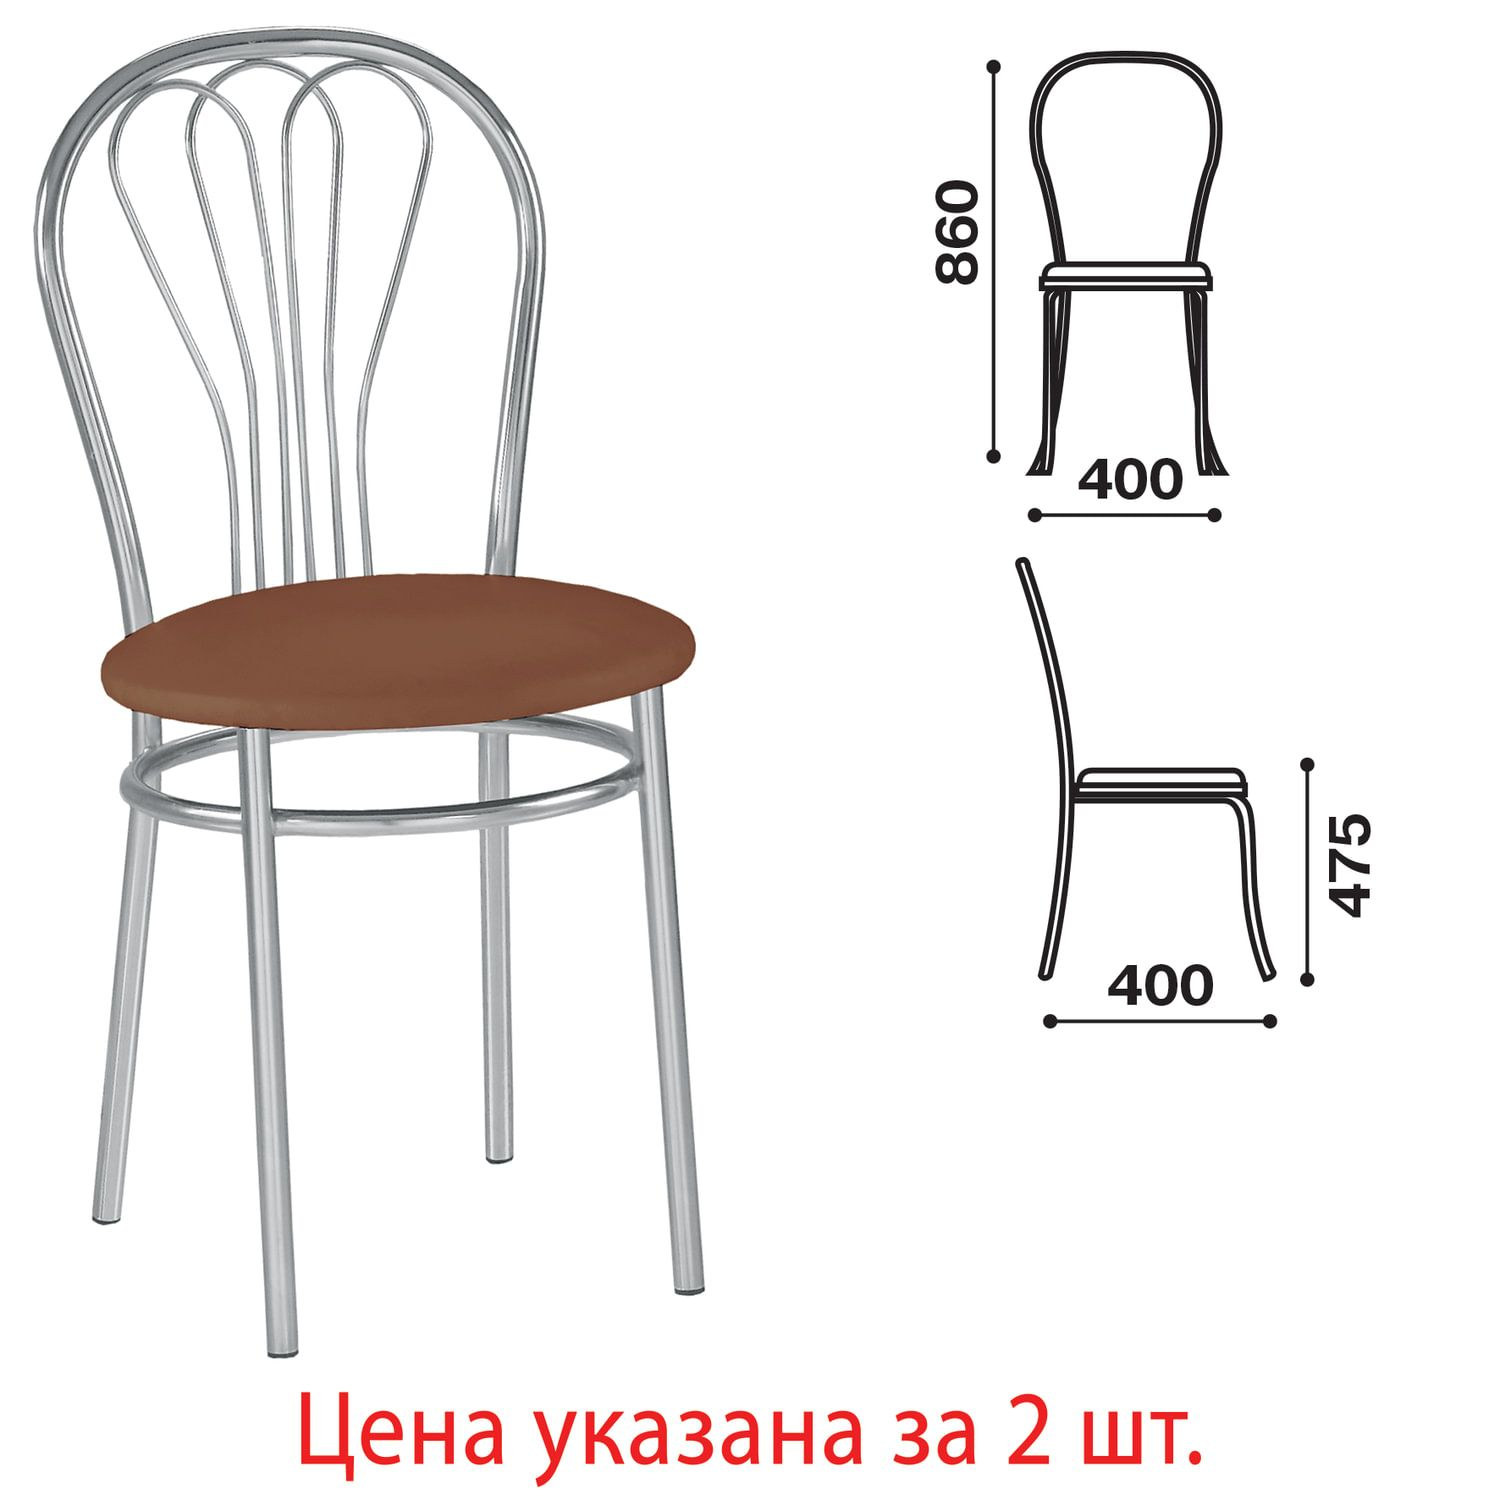 Chairs for dining rooms, cafes, Venus houses, set 2 pieces, chrome frame, leather brown